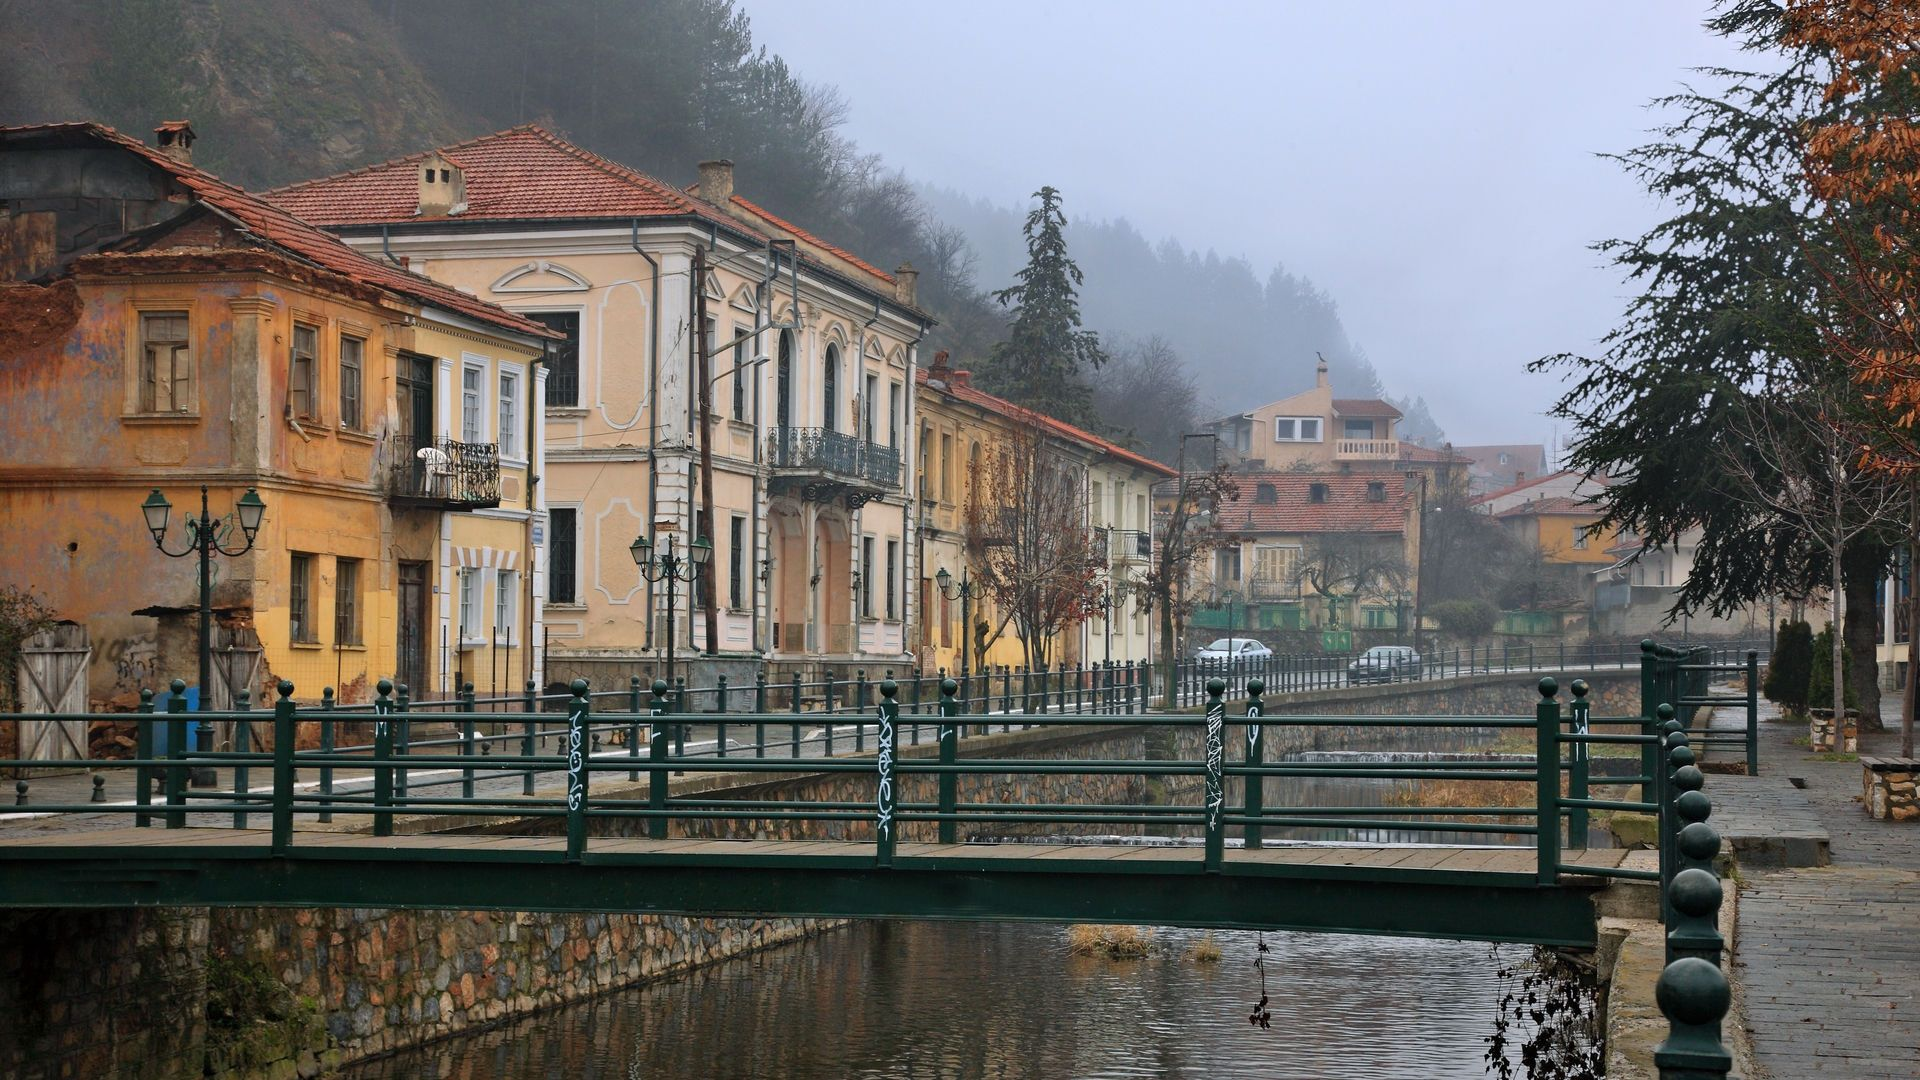 Just a stone's throw from Nymfaio, you'll find Florina, another popular winter destination in Macedonia